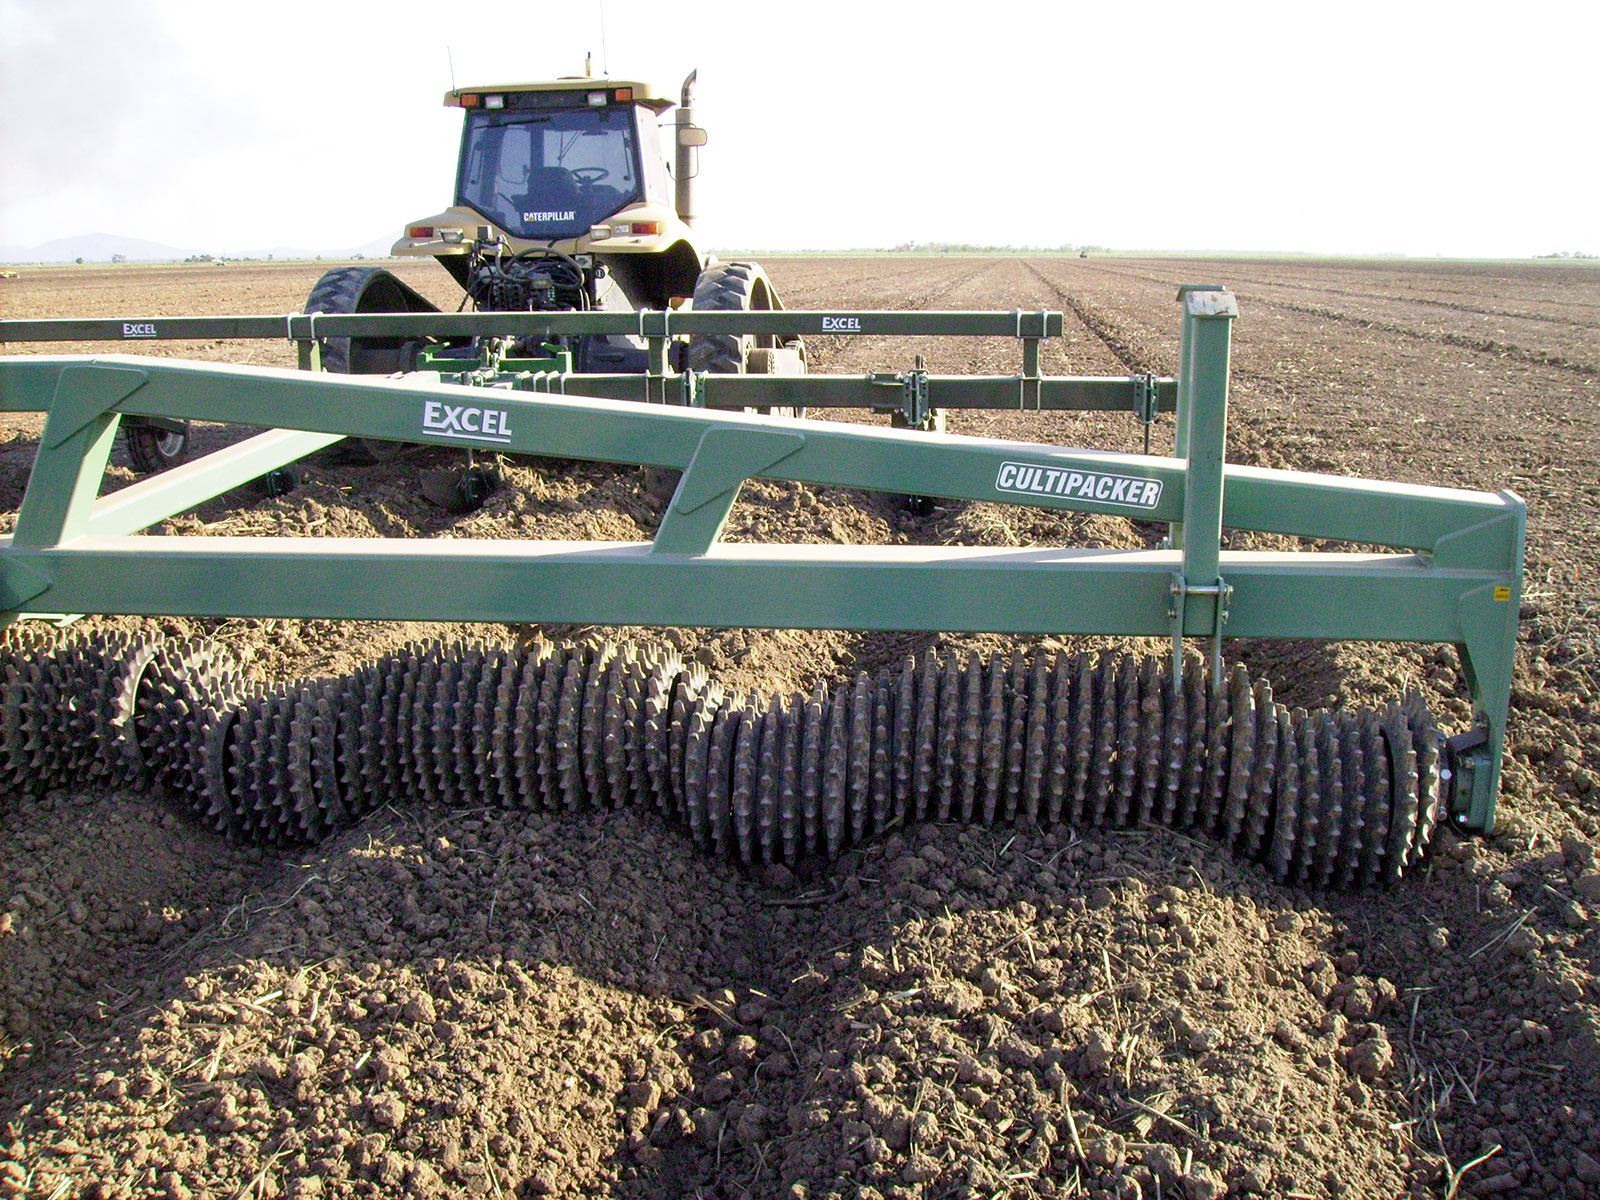 Excel Cultipacker Row Crop Tillage Equipment From Excel